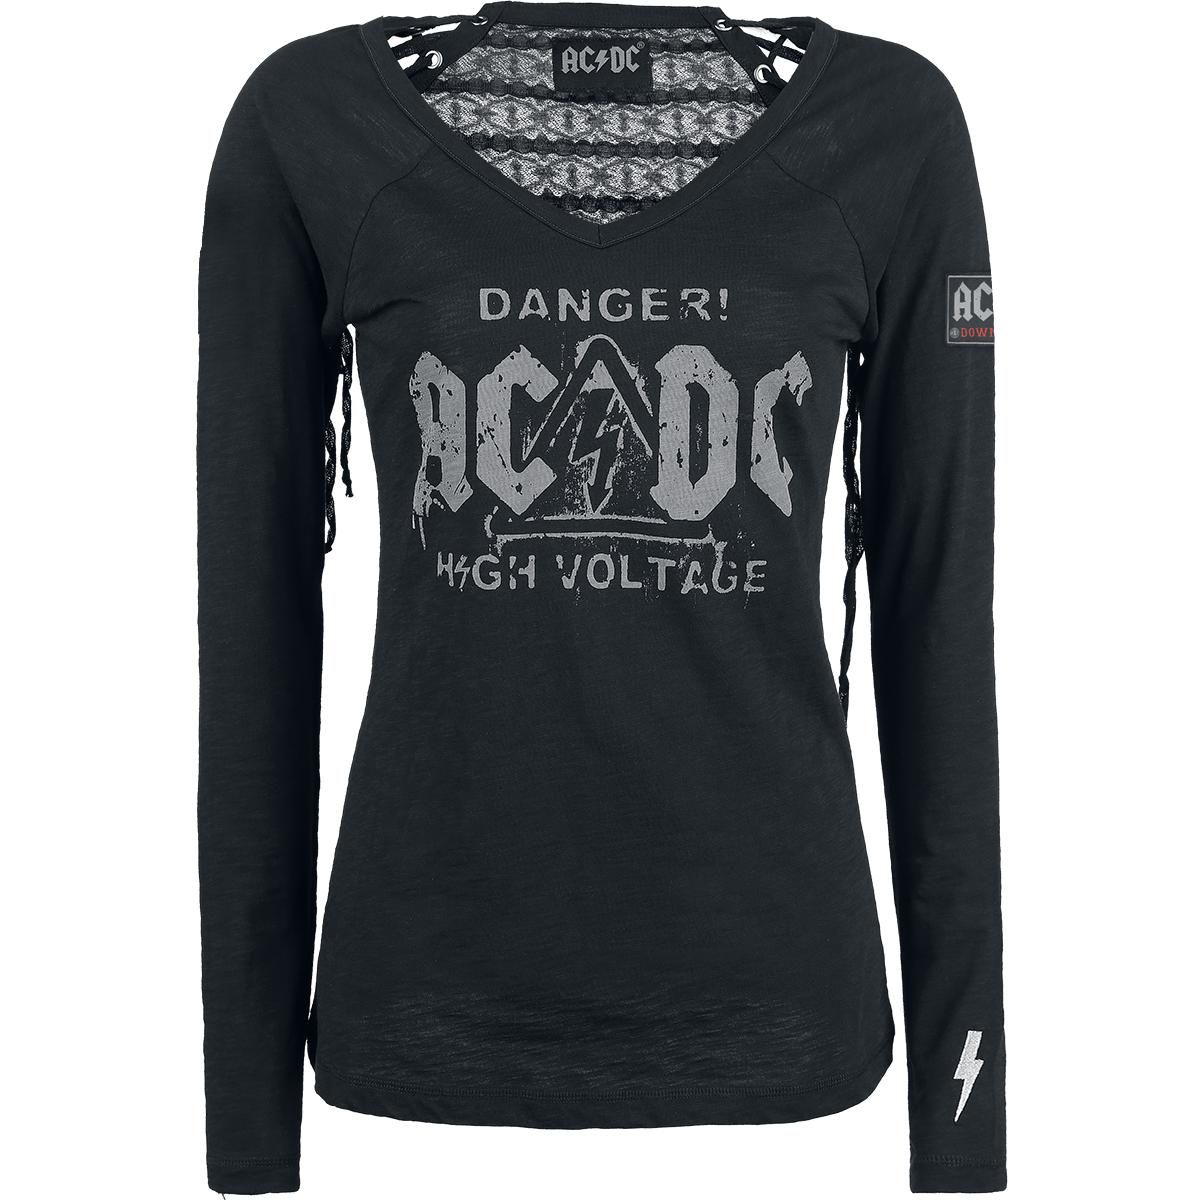 Back in black t shirt - Ac Dc Long Sleeved Shirt Women High Voltage Black Emp